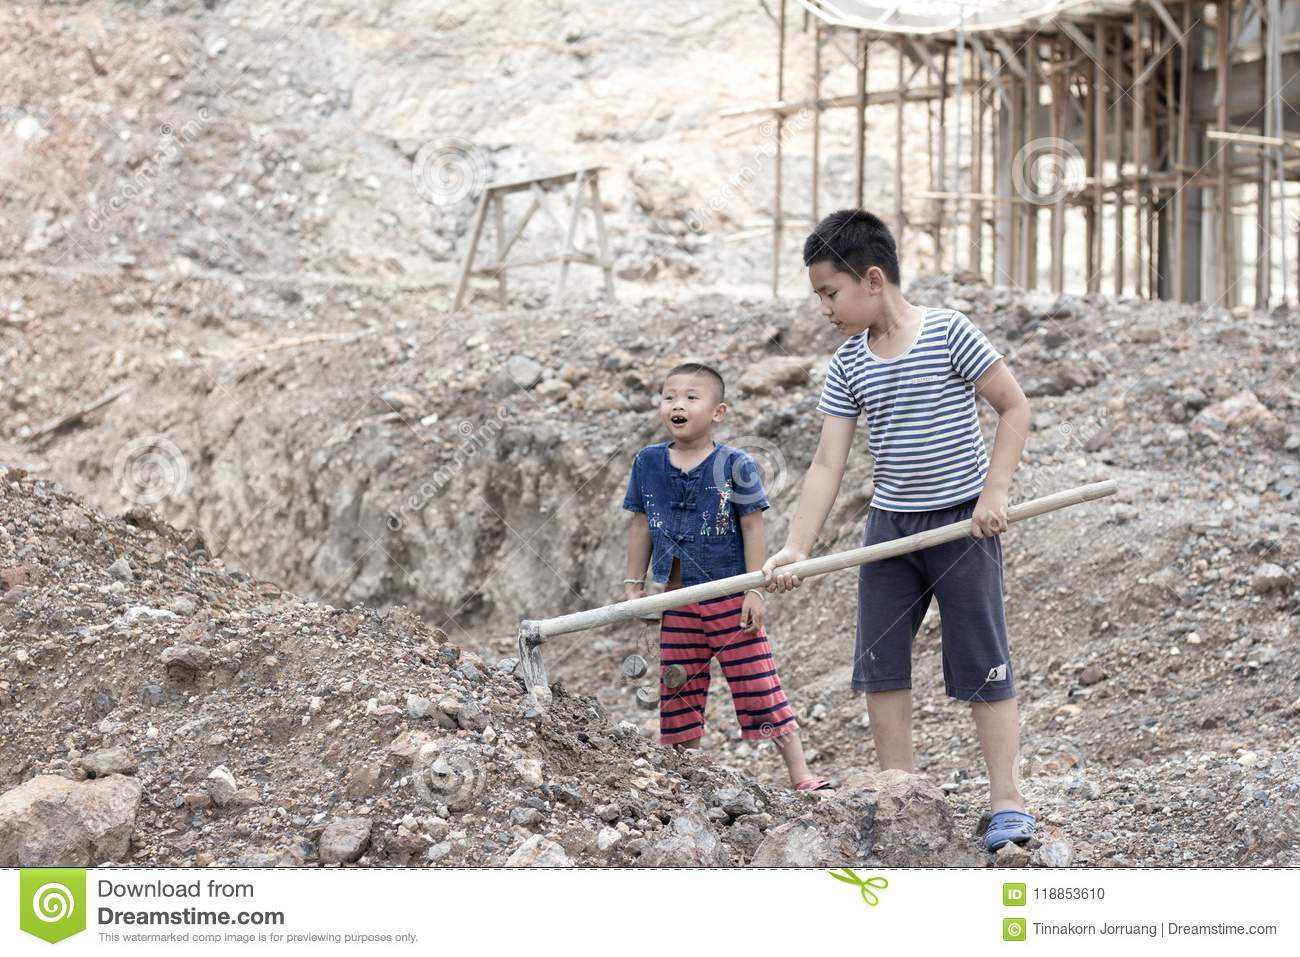 Poverty and dirt